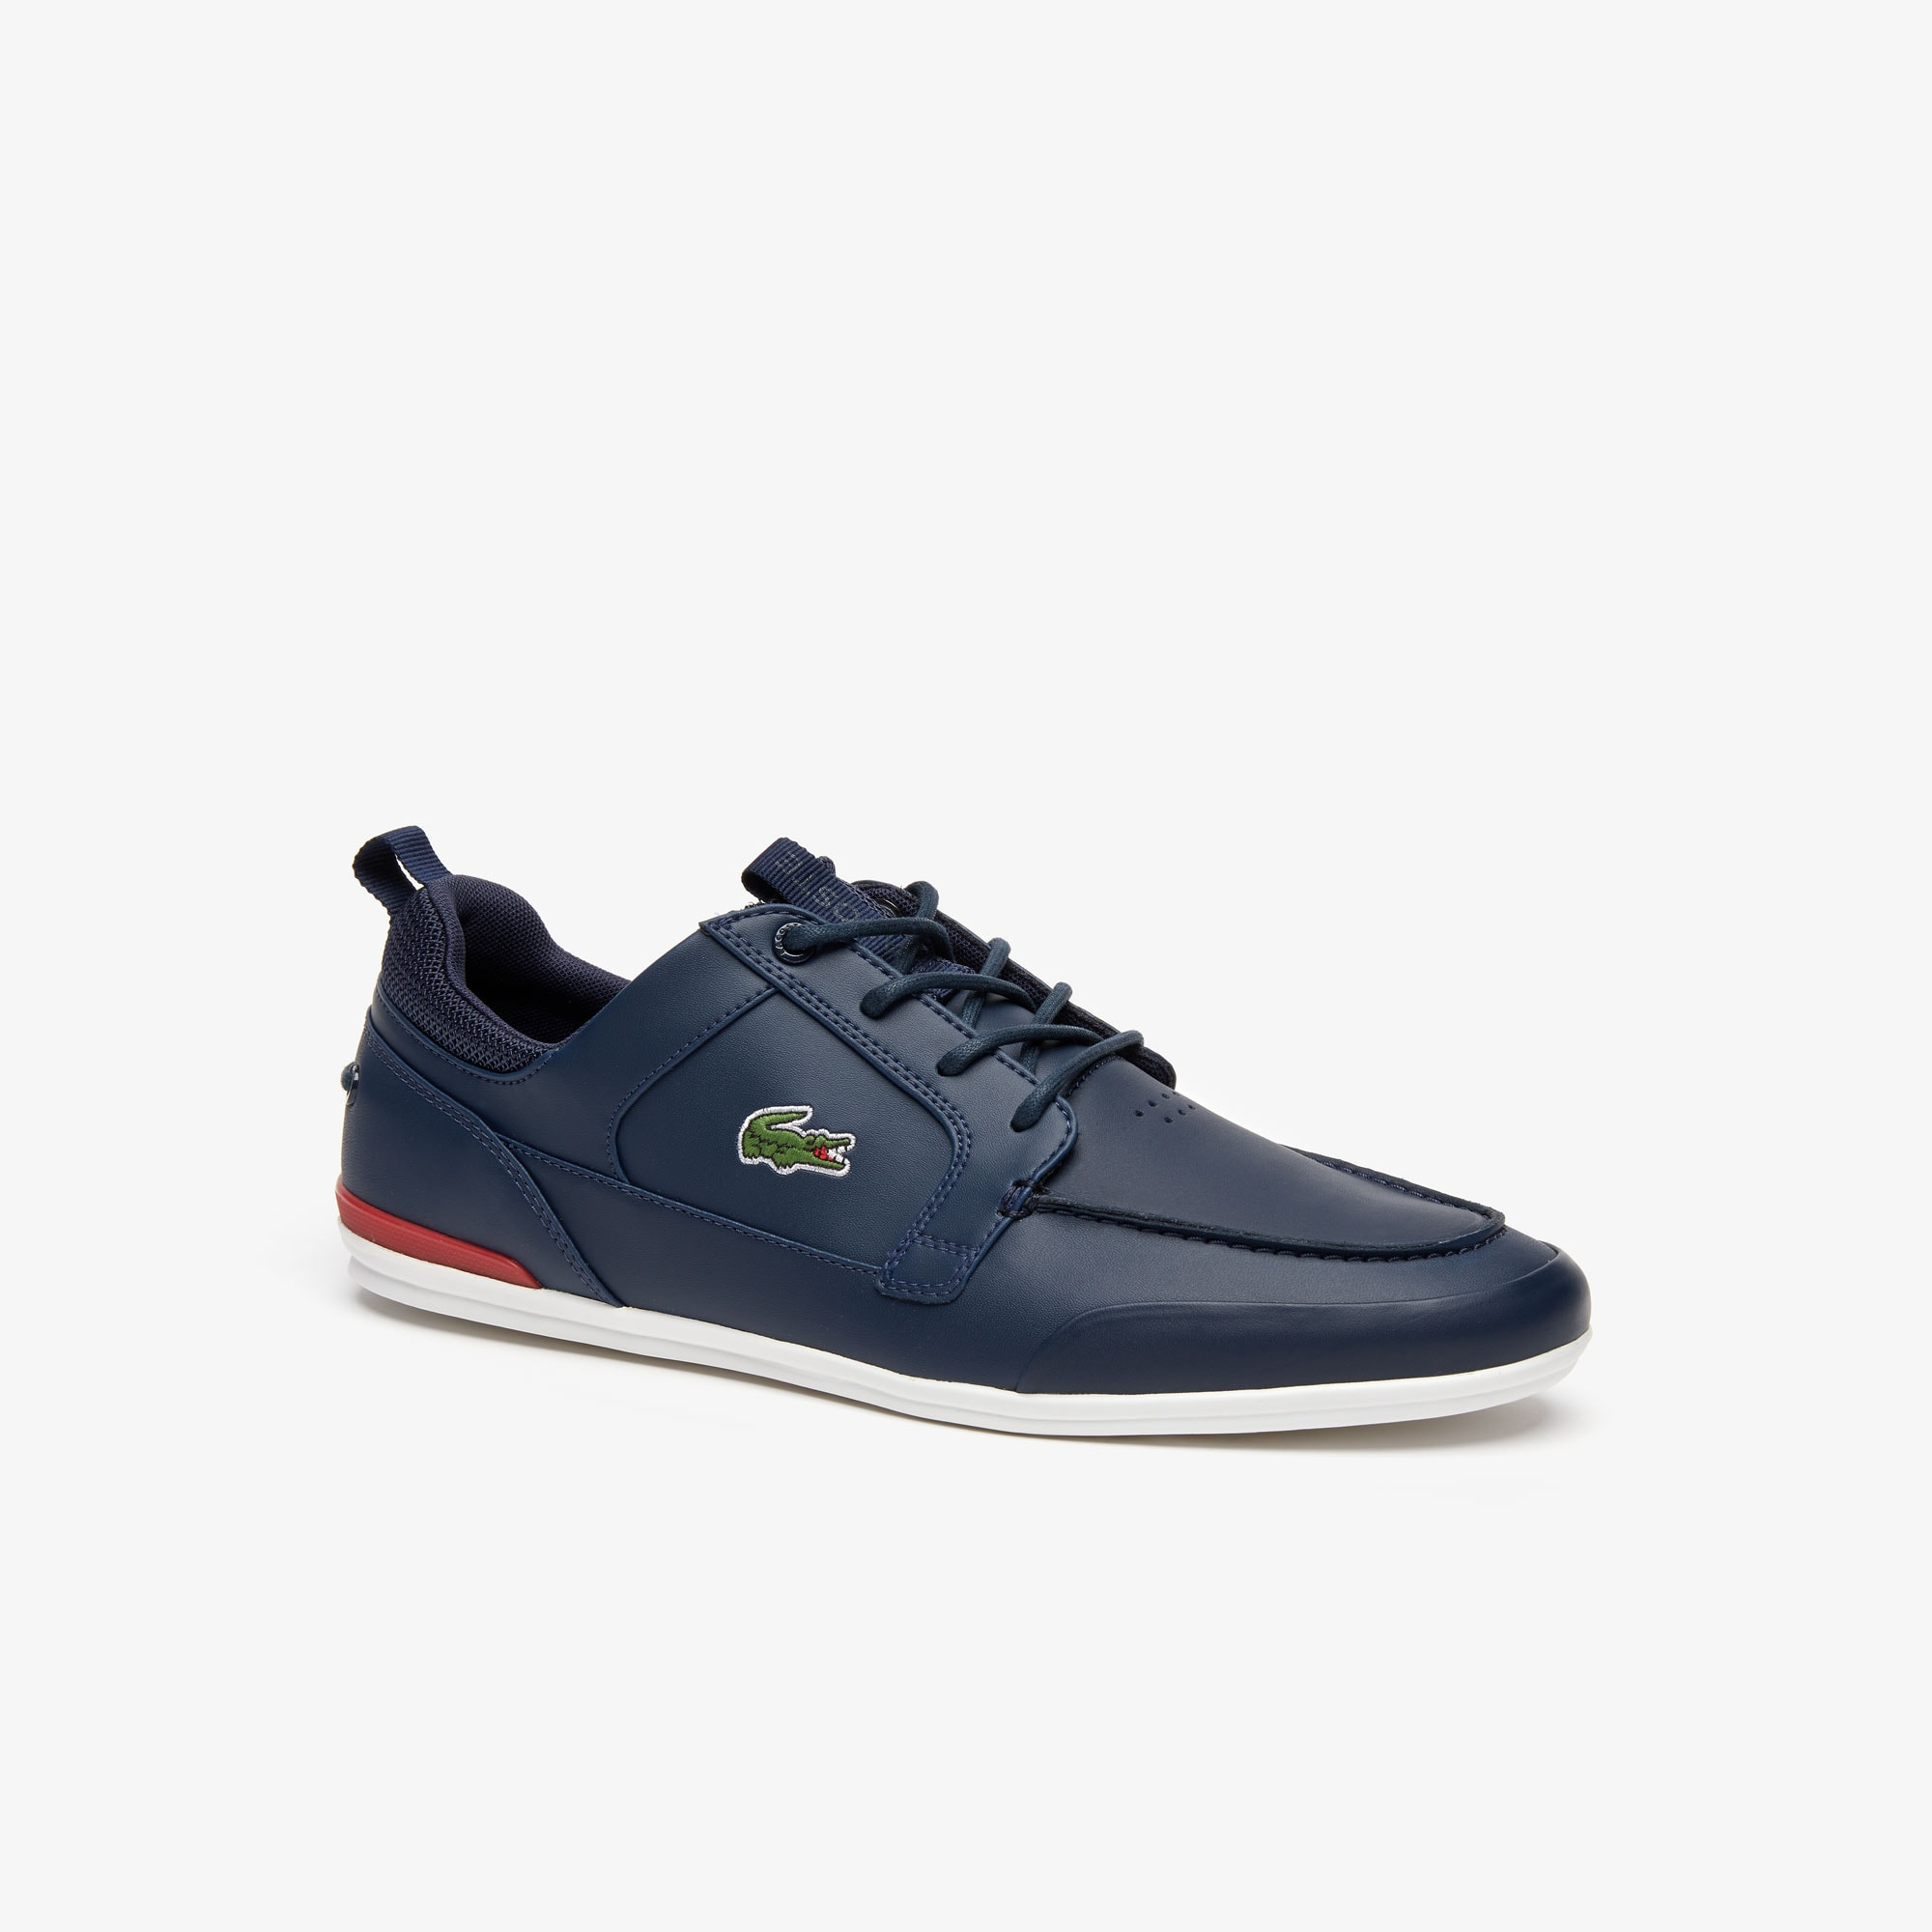 08fe027027 Men's Shoes | Shoes for Men | LACOSTE